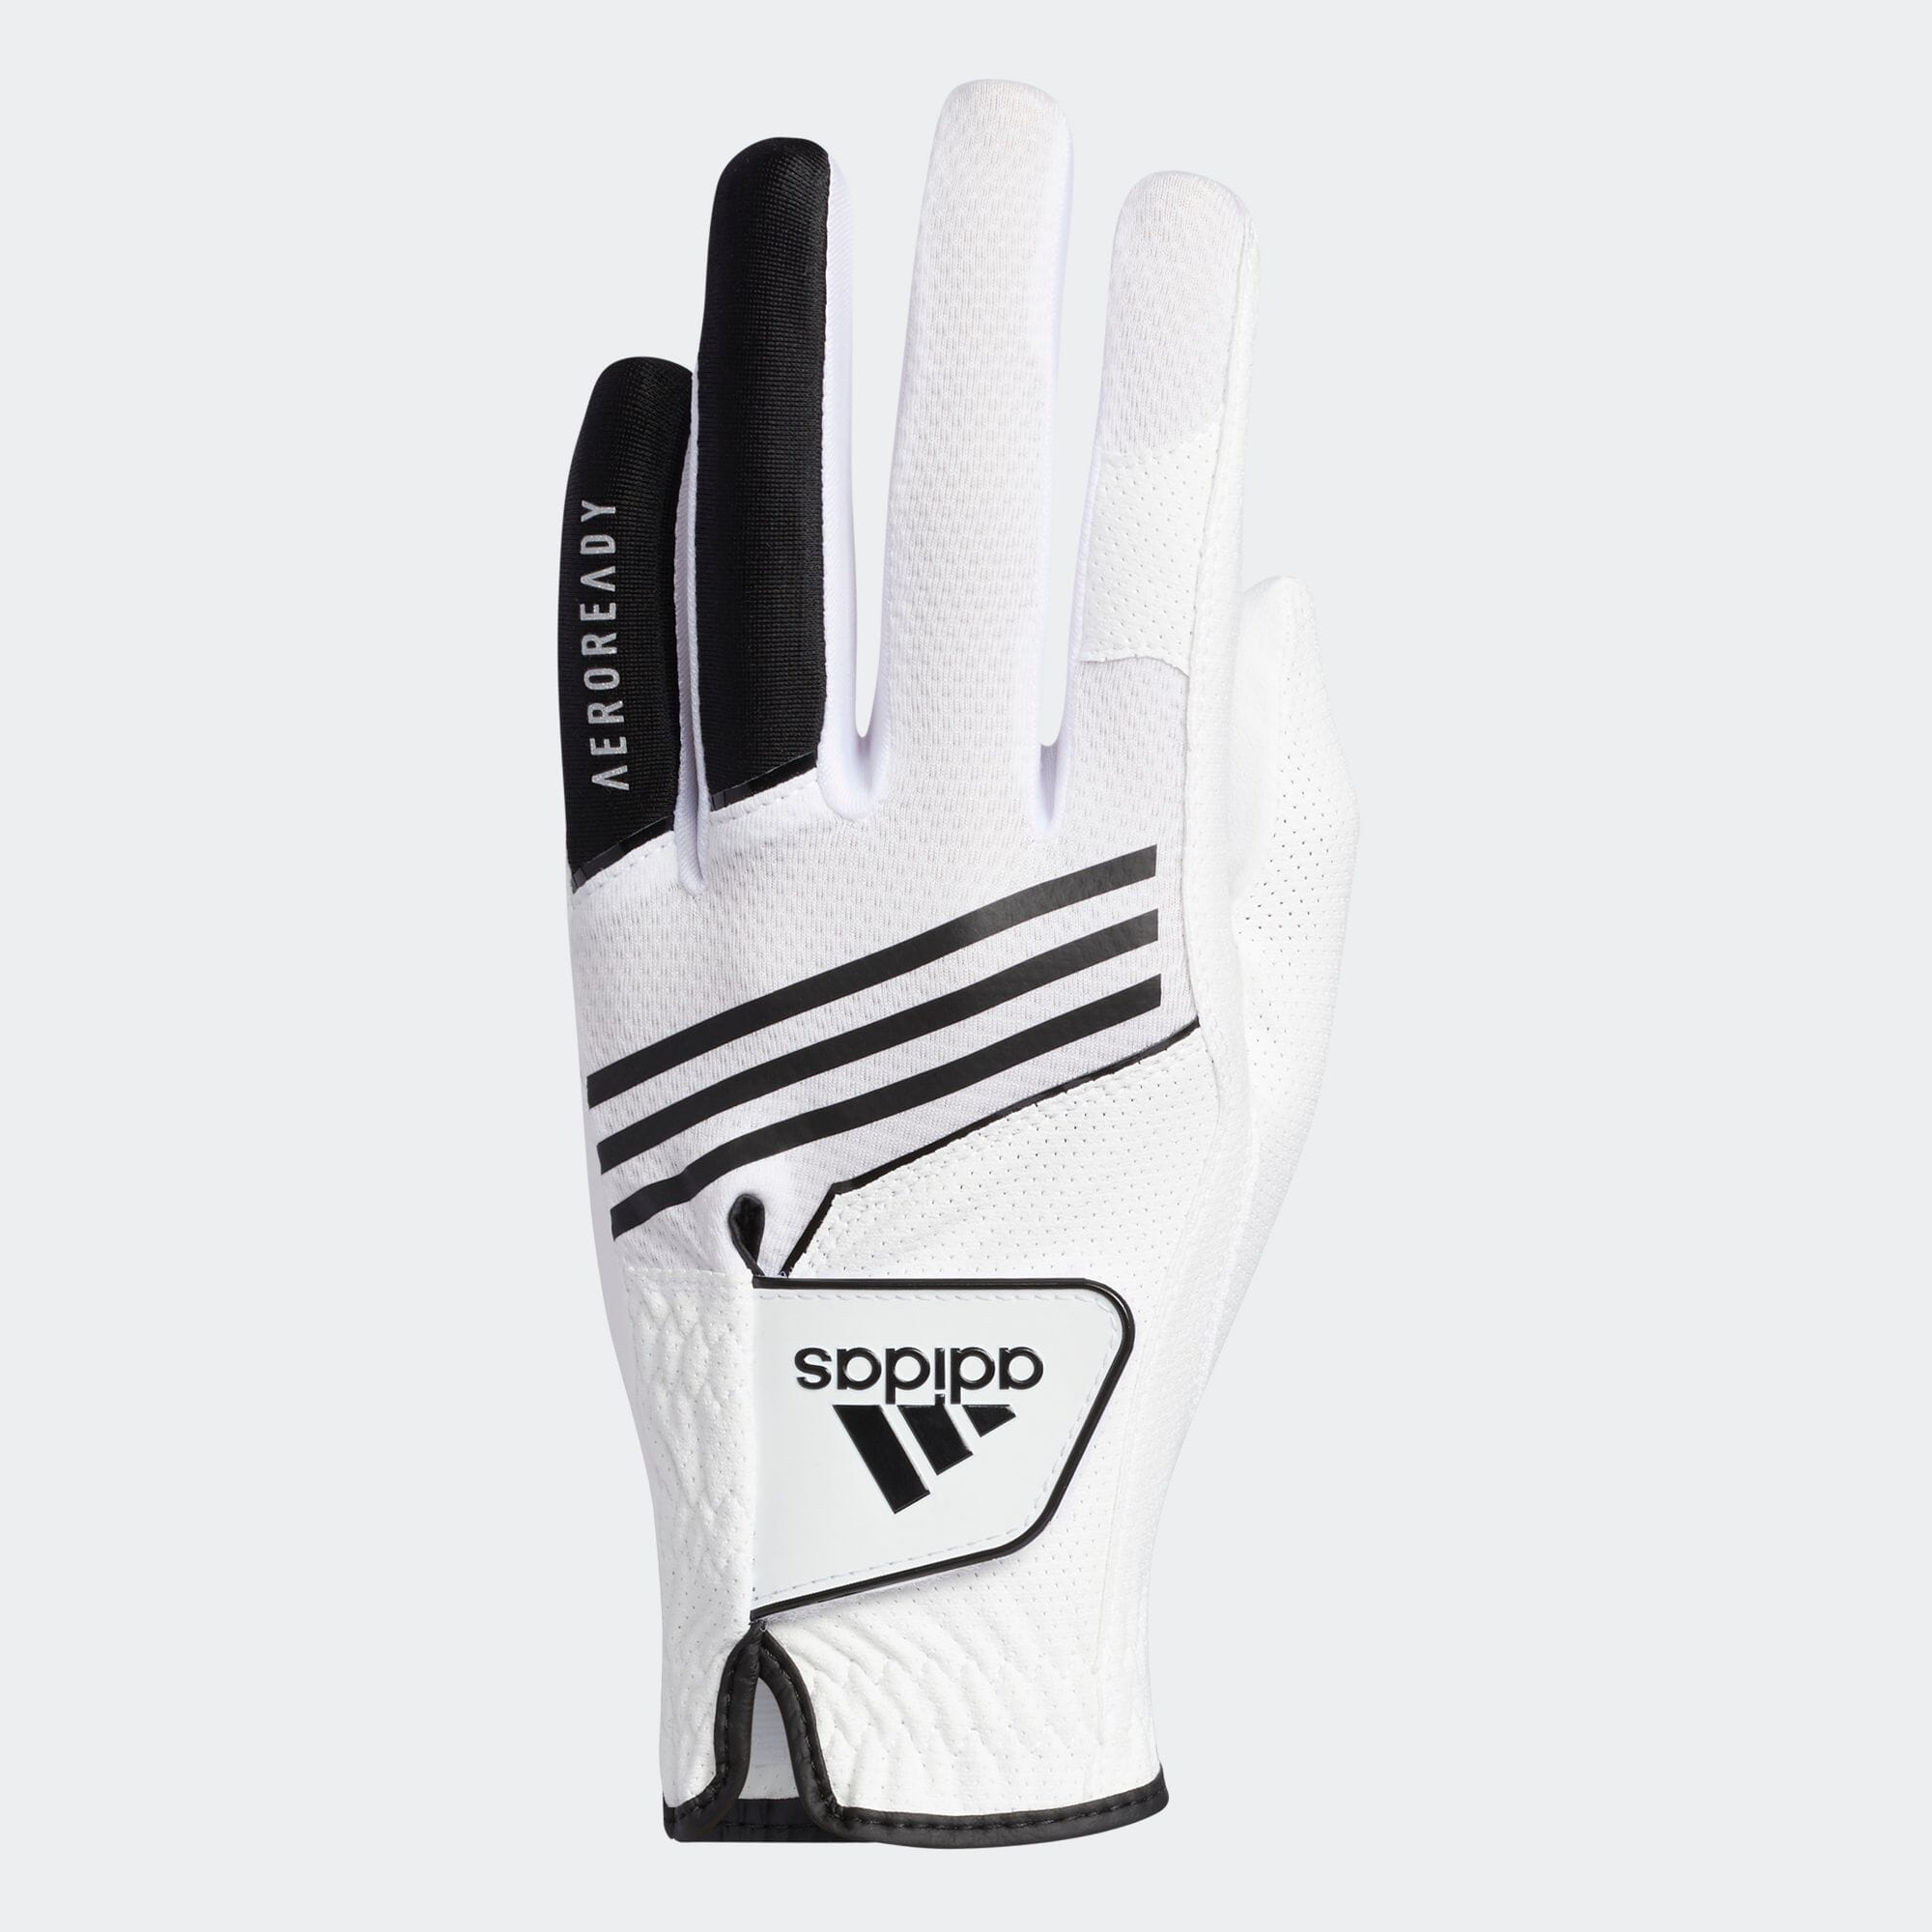 AEROREADY グローブ 【ゴルフ】/ AEROREADY Glove